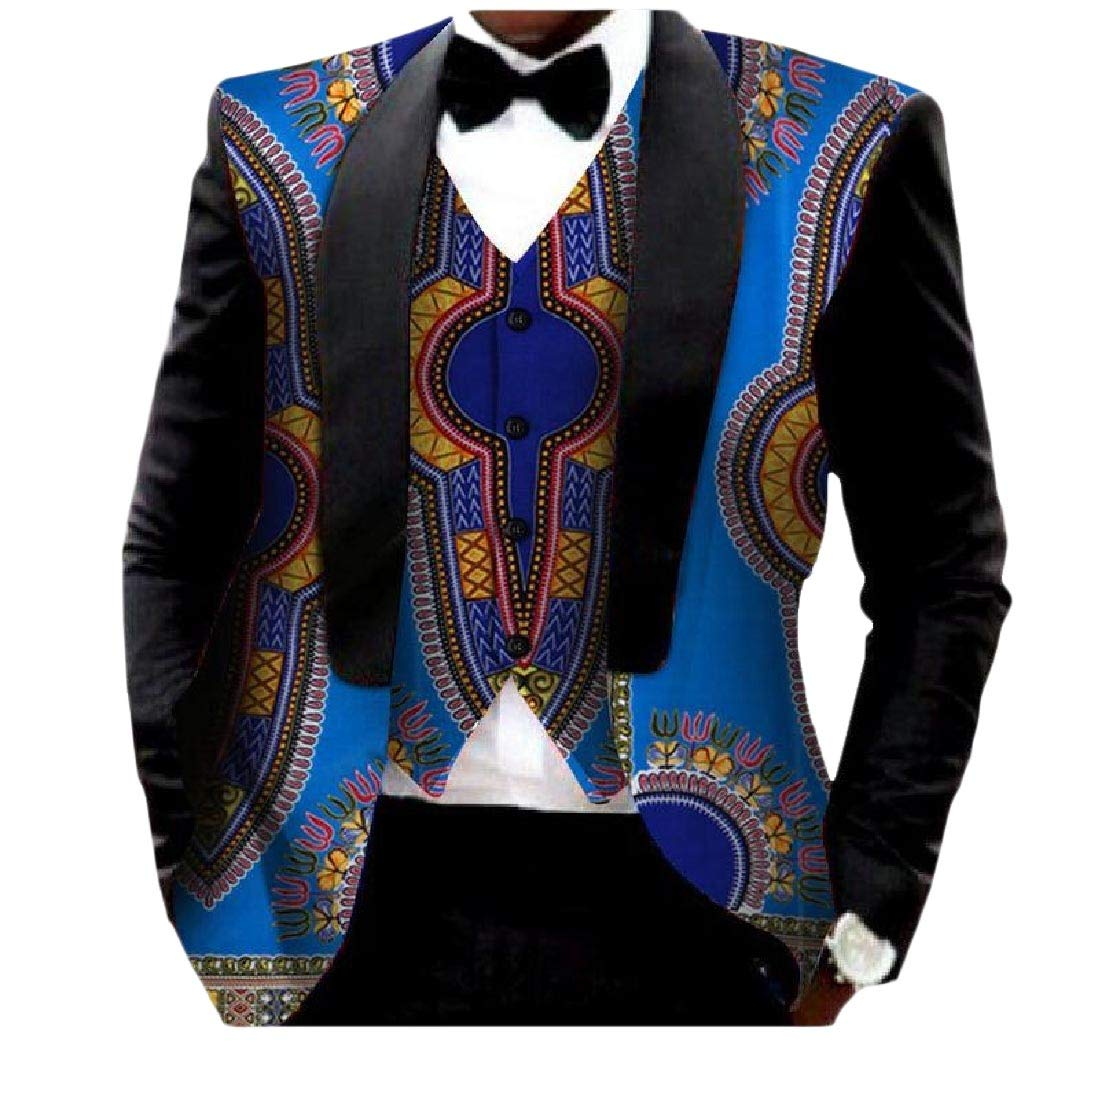 AGAING Men African Print 2pcs-Set Vest Blazer Classic Slim Fit Suit Jacket 22 M